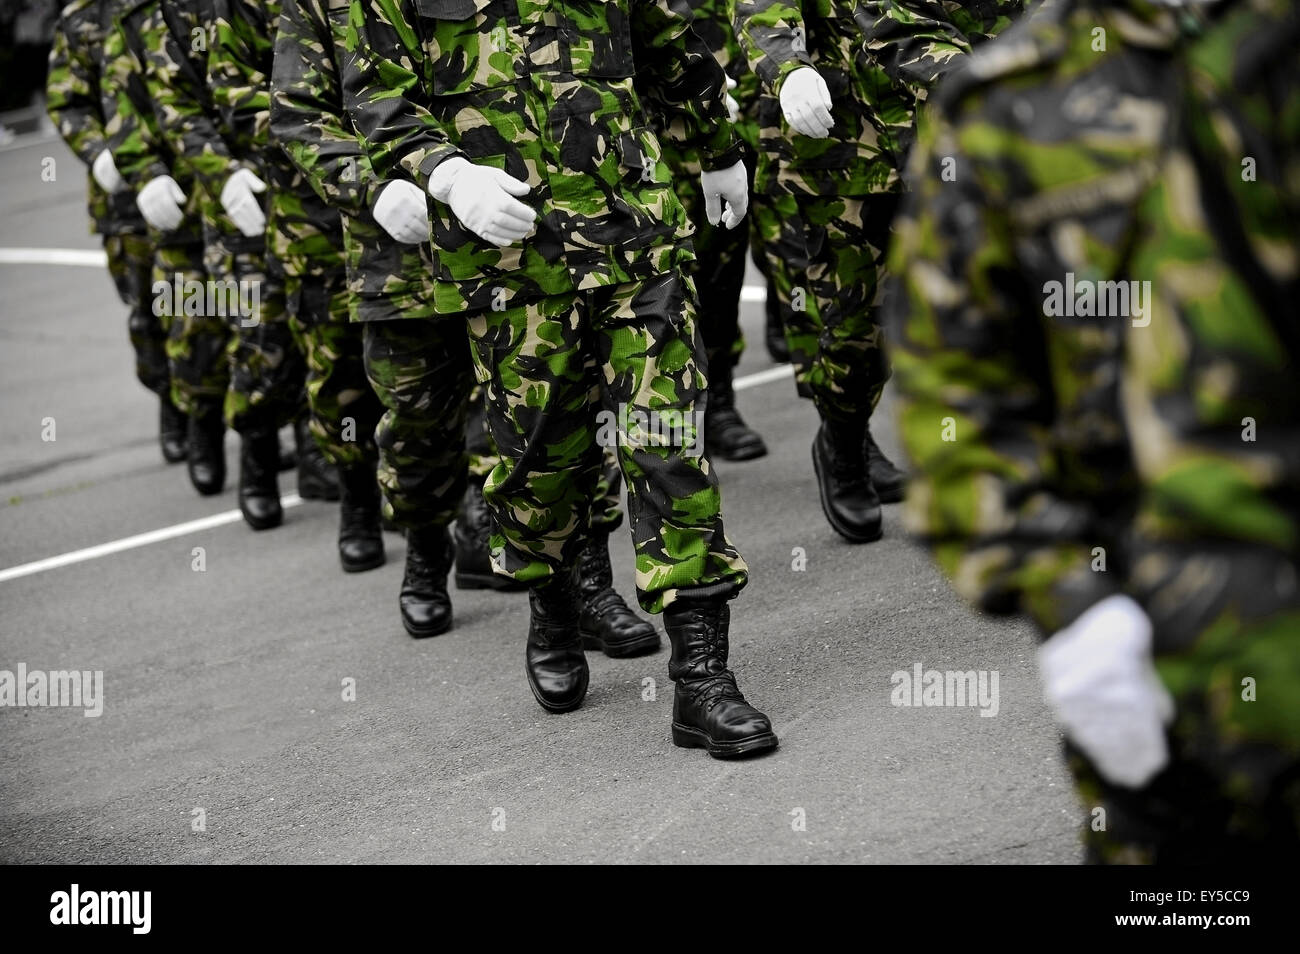 Soldiers in green camouflage uniform march in formation - Stock Image